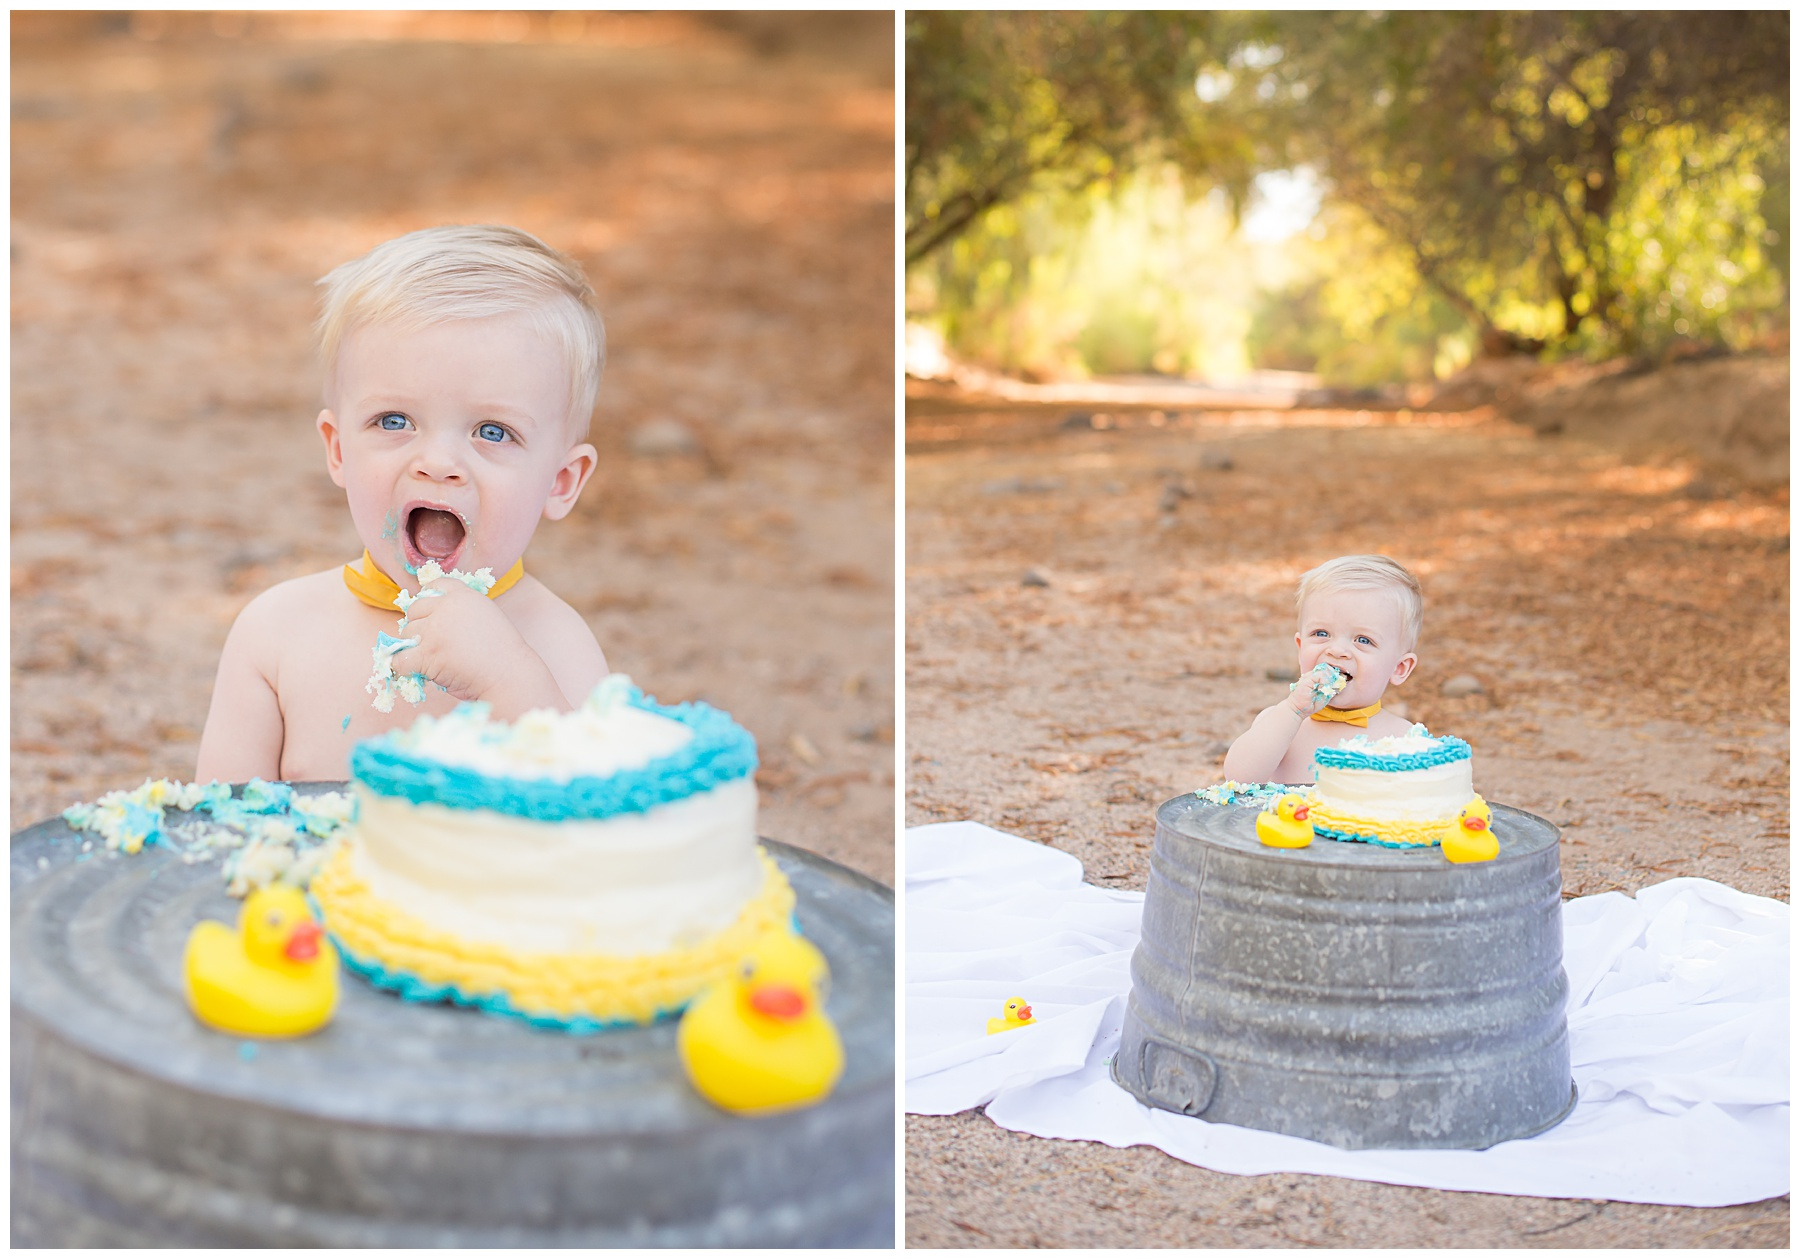 Tips-for-a-Succcessful-Cake-Smash-Sweetlife-Photography_0005.jpg